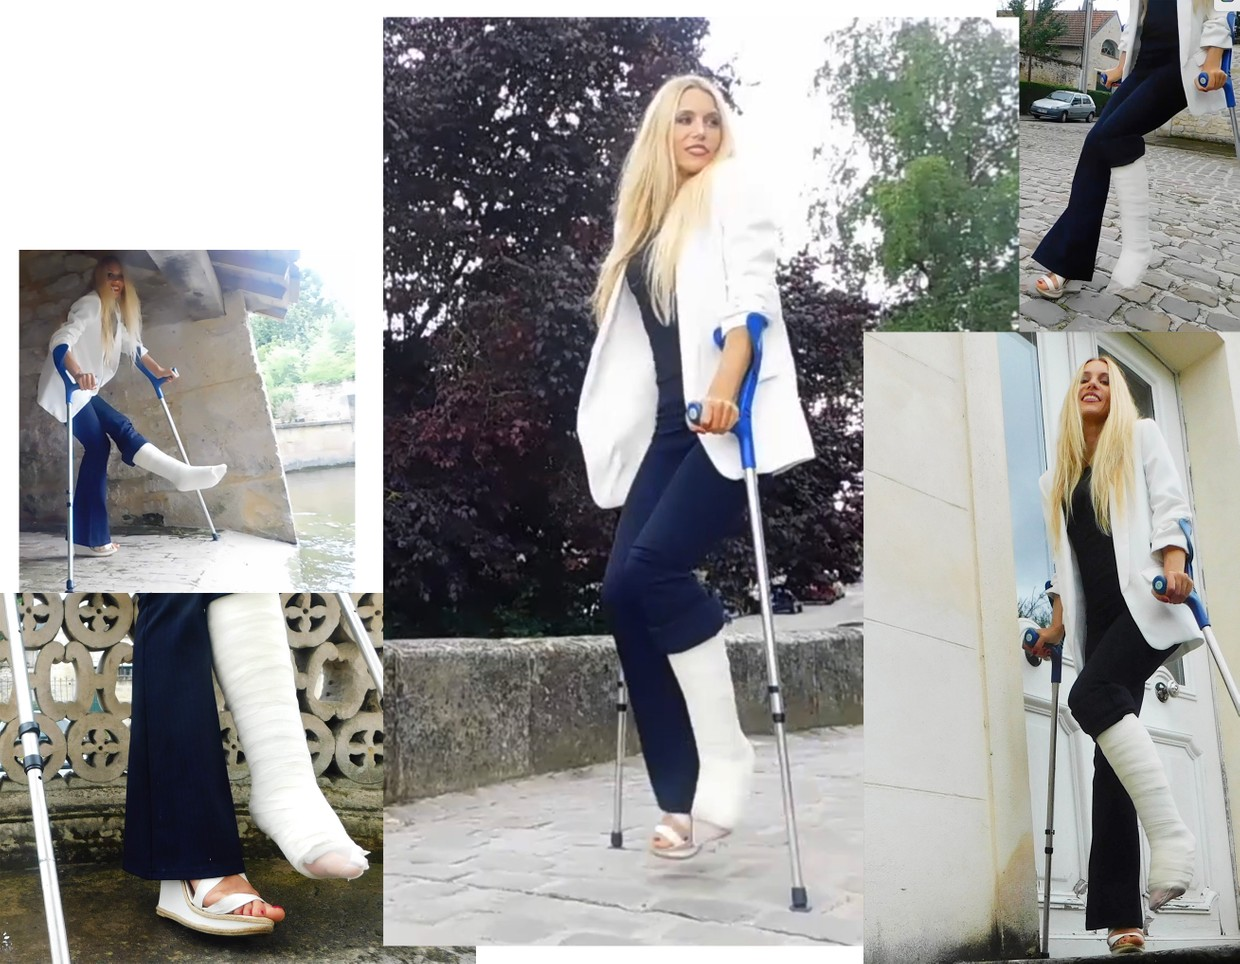 Castlinda SLC - Jolie Modling - Linda exploring the area on crutches, her left leg is immobilized in a white, plaster legcast covered by nylons...